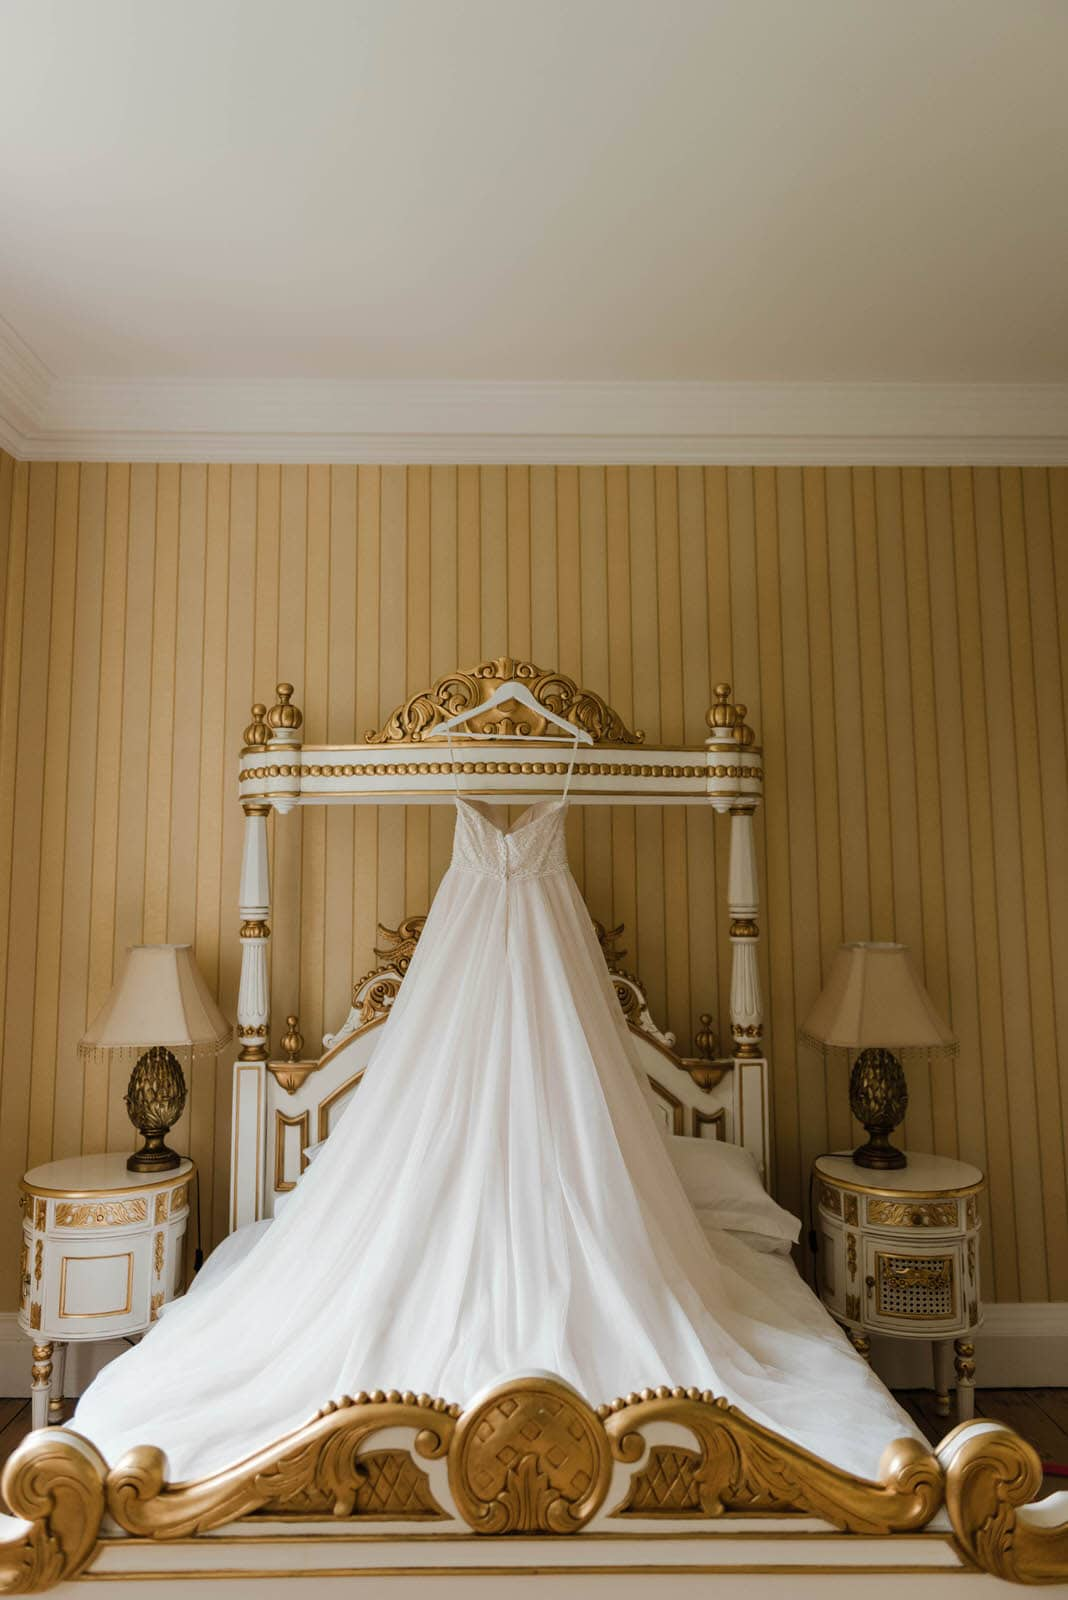 Photograph of beautiful wedding dress at Hirst Priory hanging on the bed